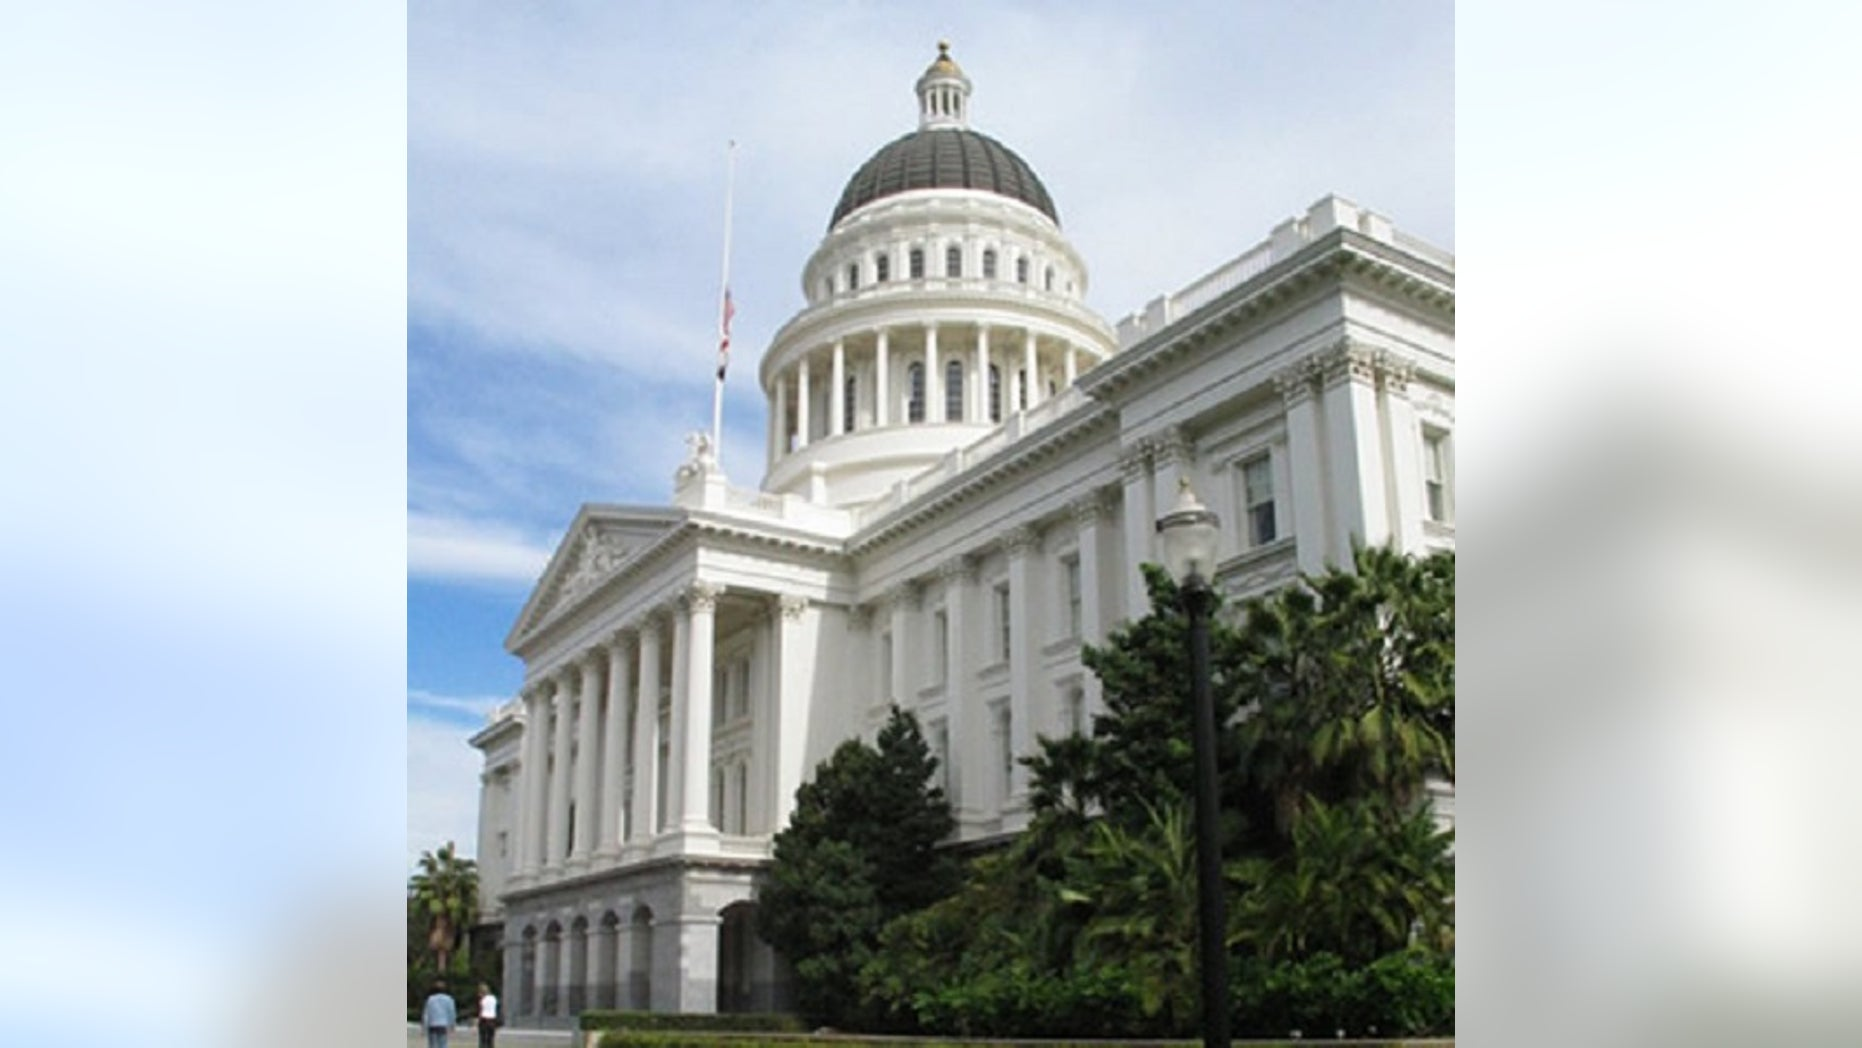 Democratic lawmakers in California's state capital have sought ways to compensate for the loss of state revenue under the GOP tax overhaul.